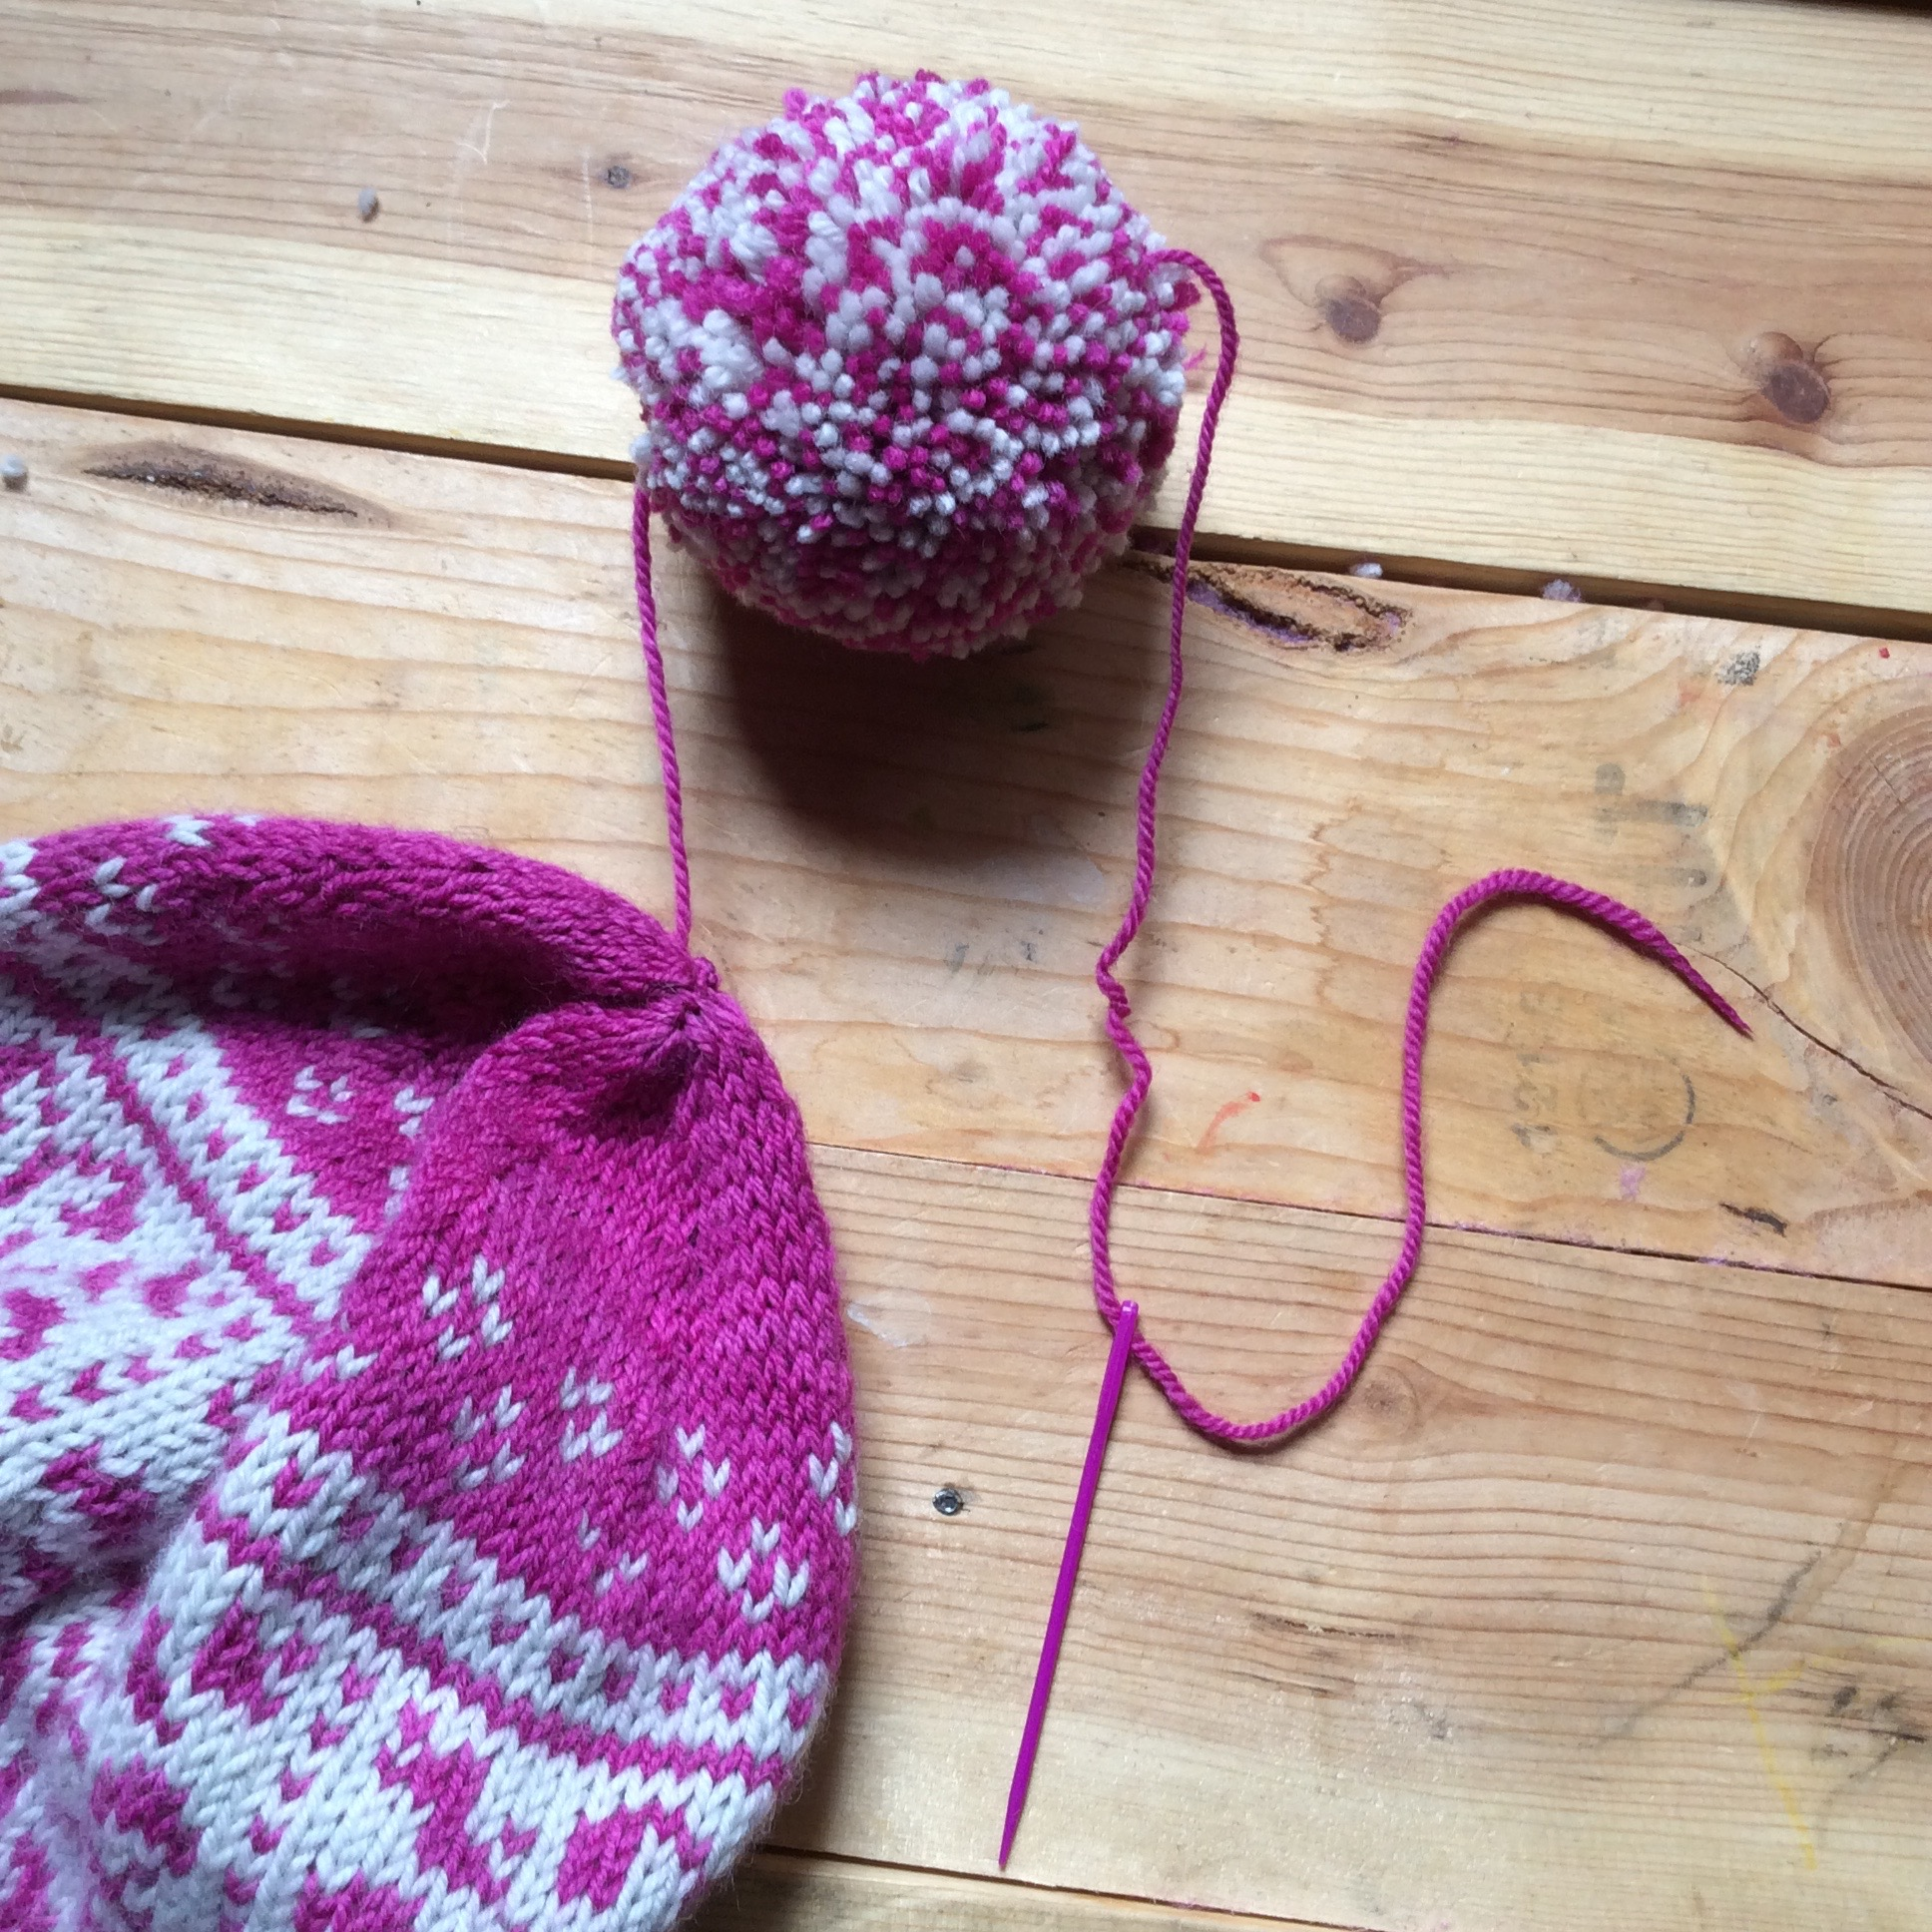 Bonus points for matching your darning needle to your project.